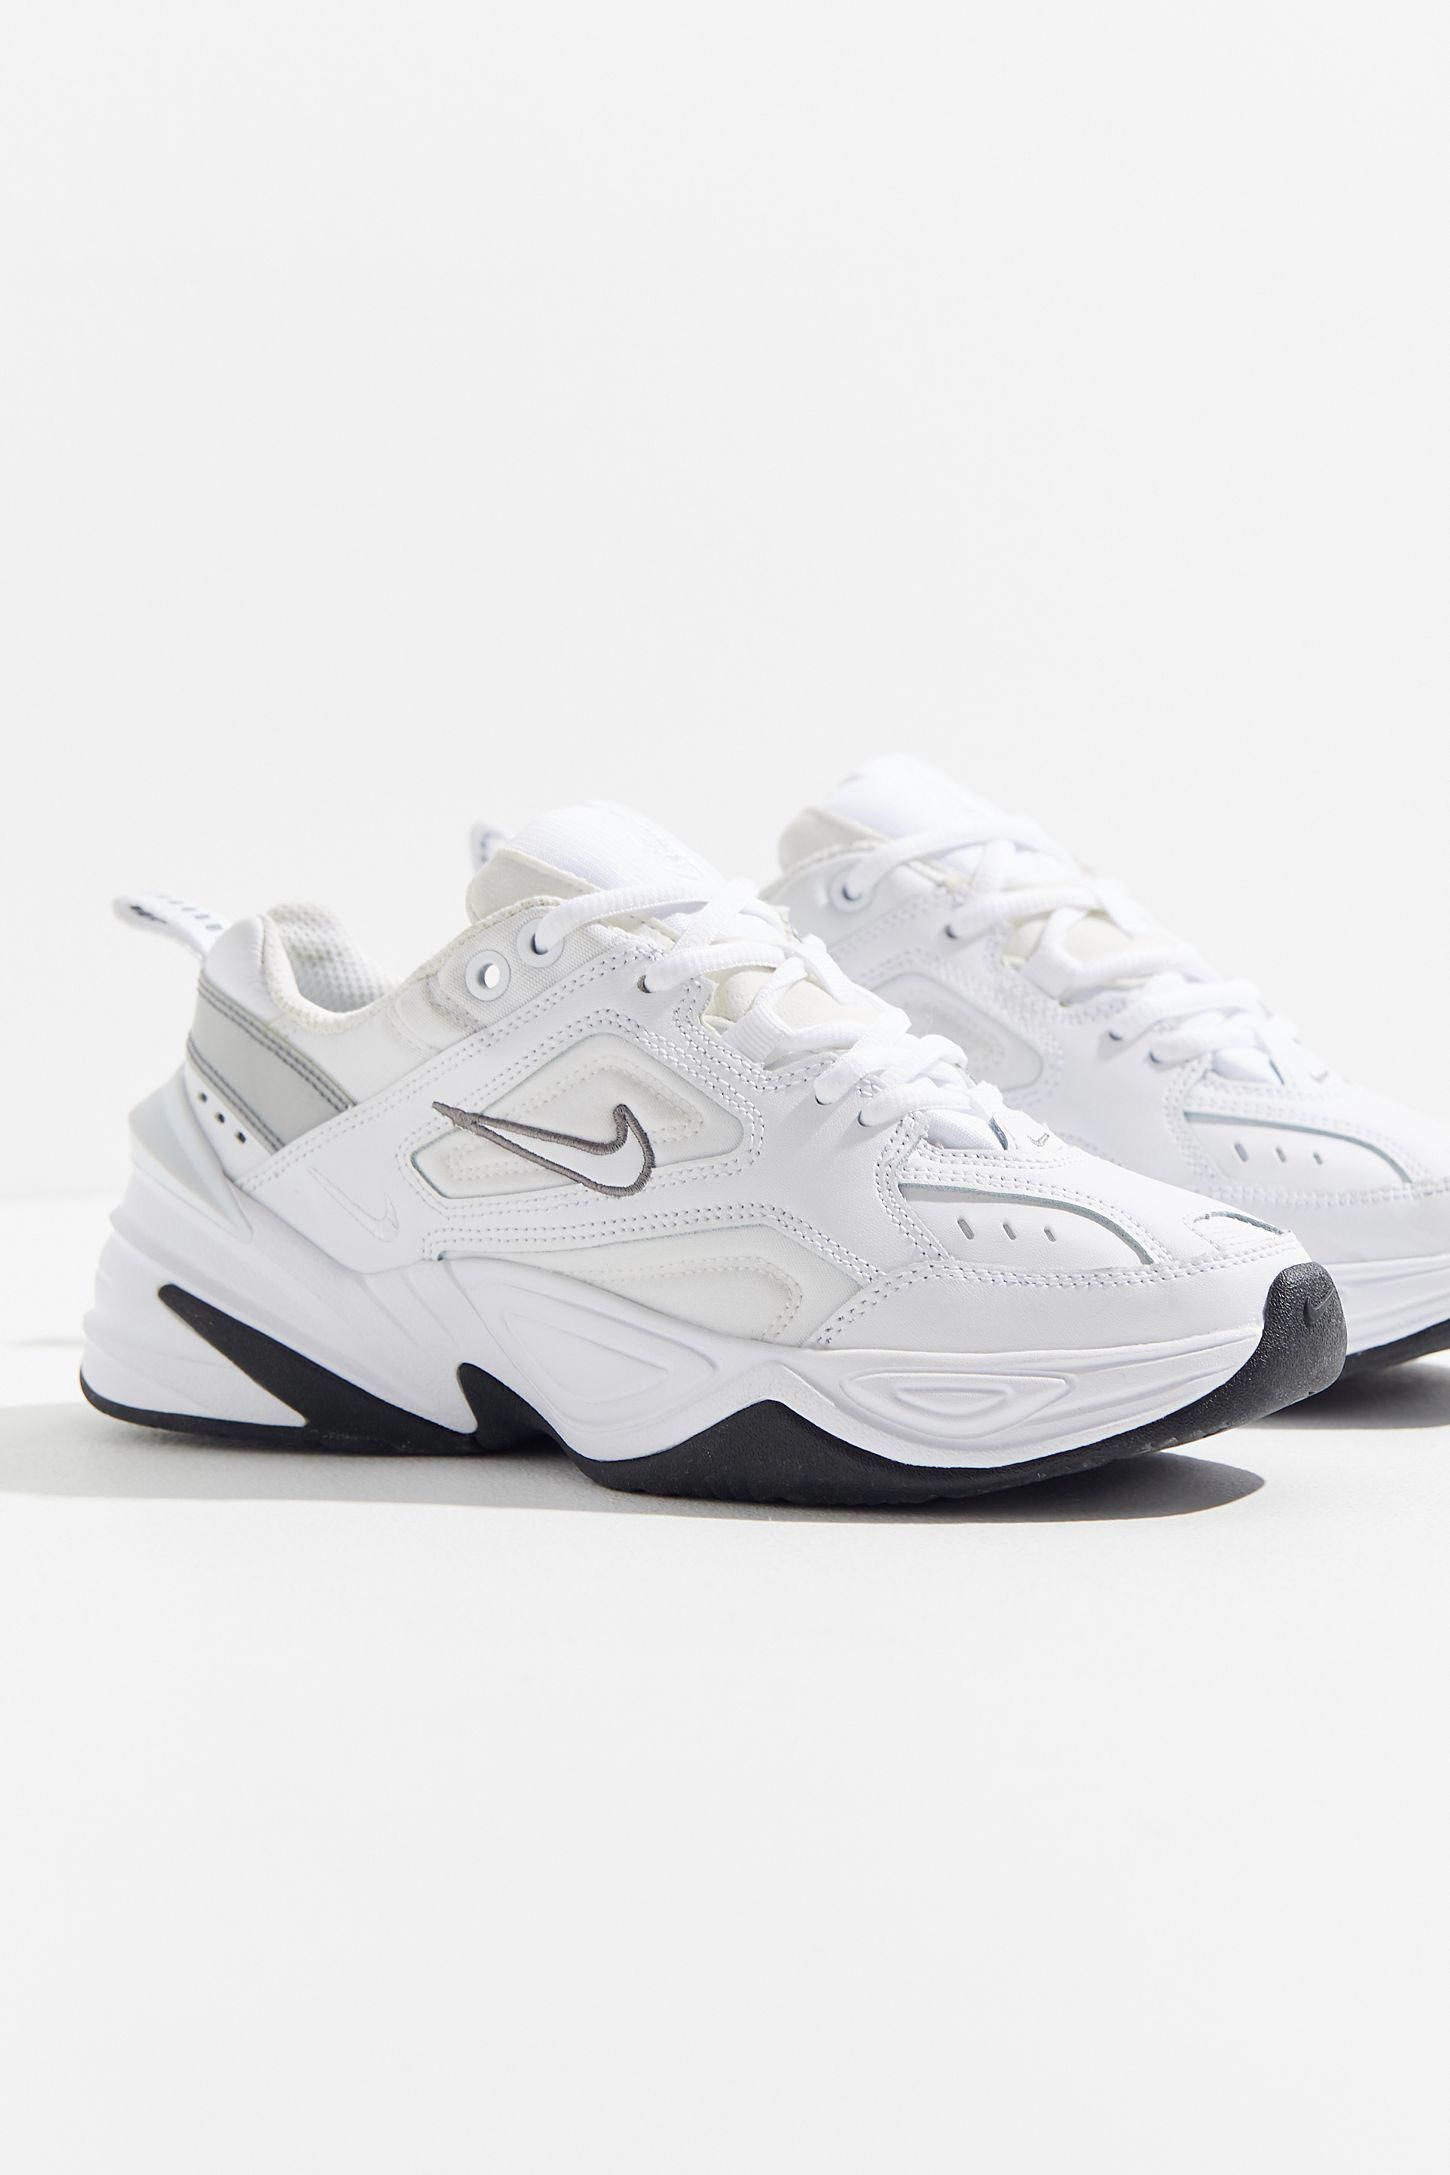 places that sell nike shoes near me